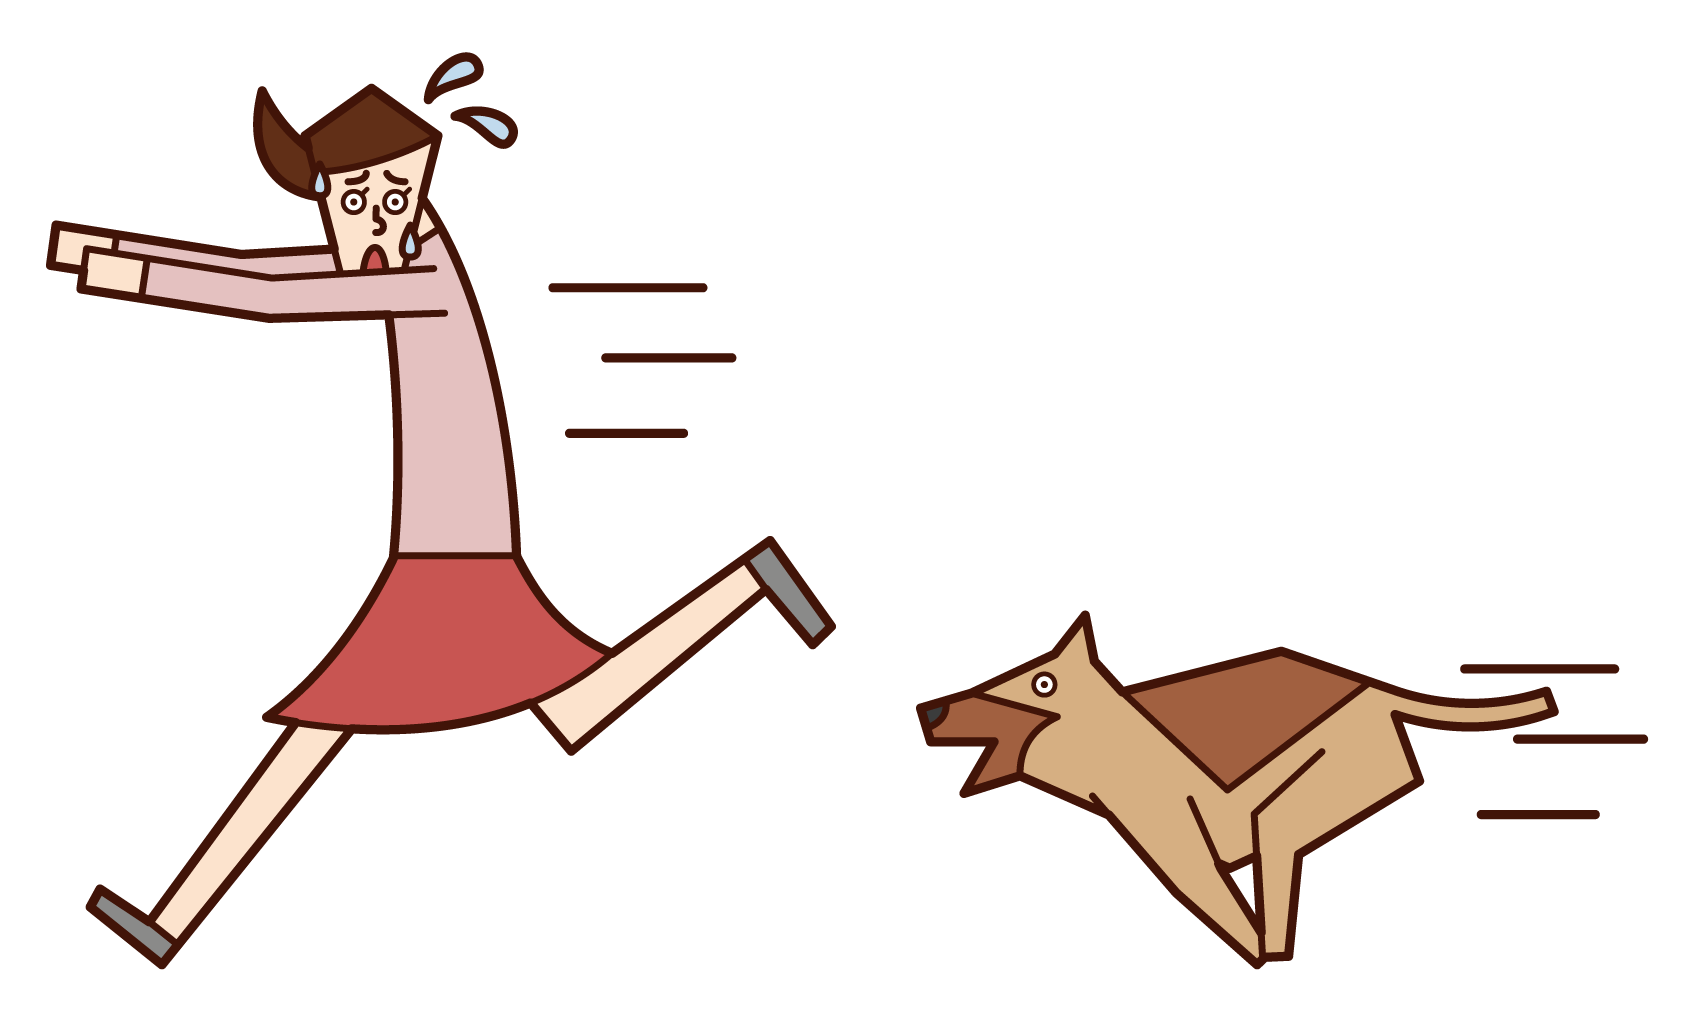 Illustration of a woman who runs away after being chased by a dog